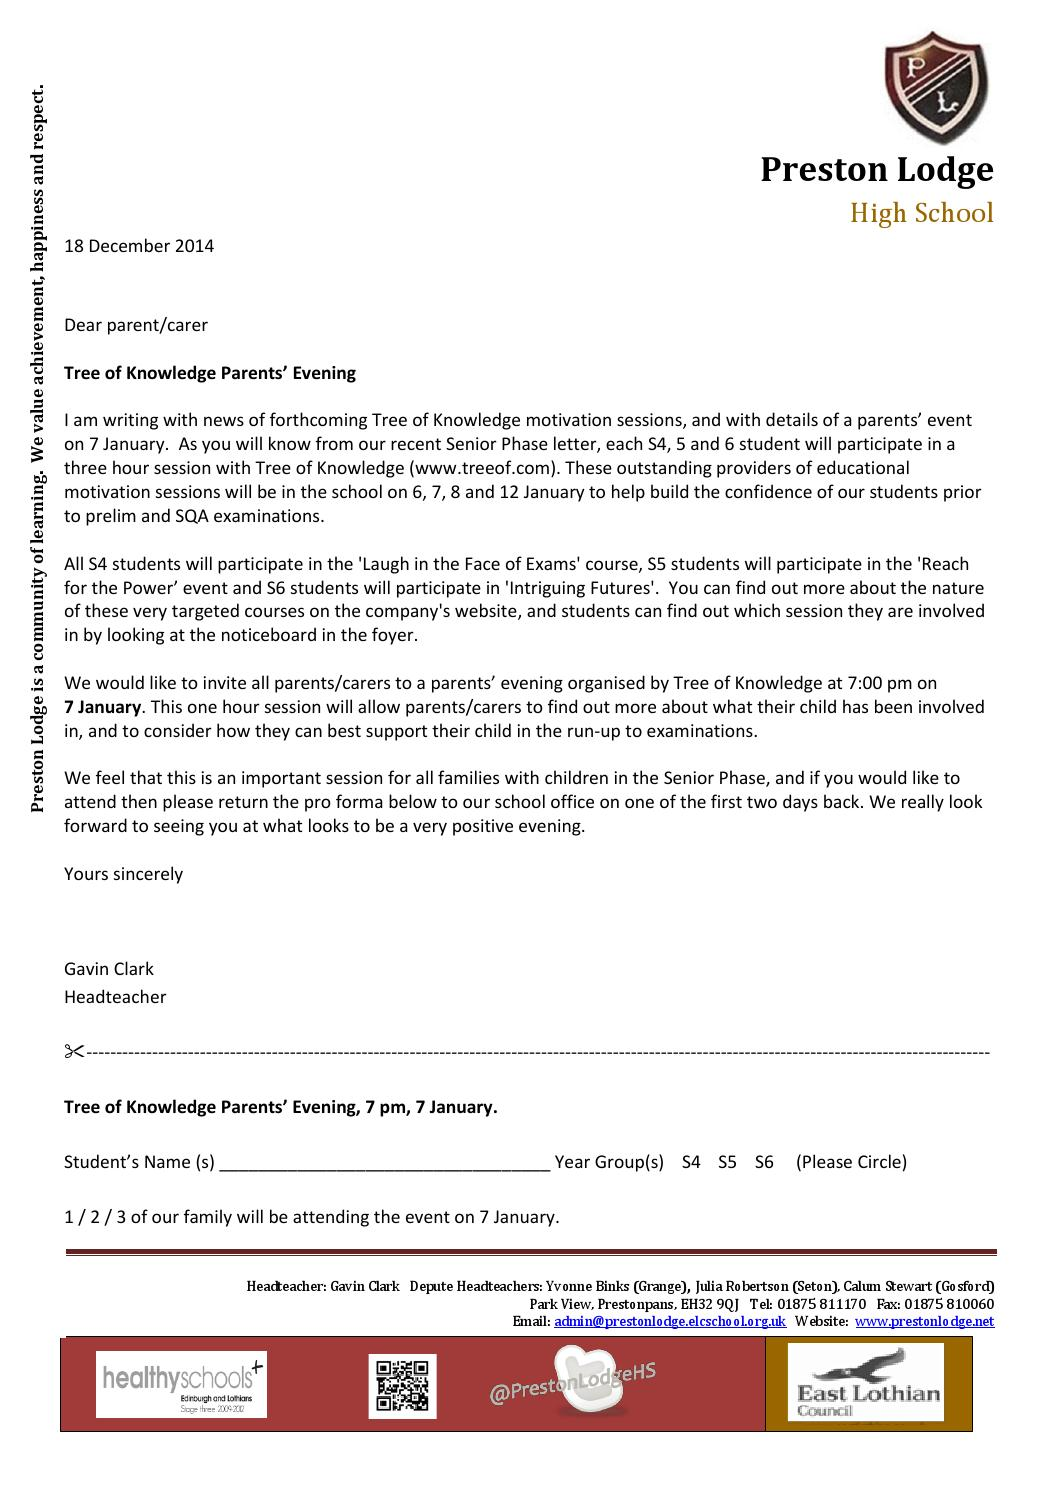 Tree Of Knowledge Parents Evening Letter By Preston Lodge High